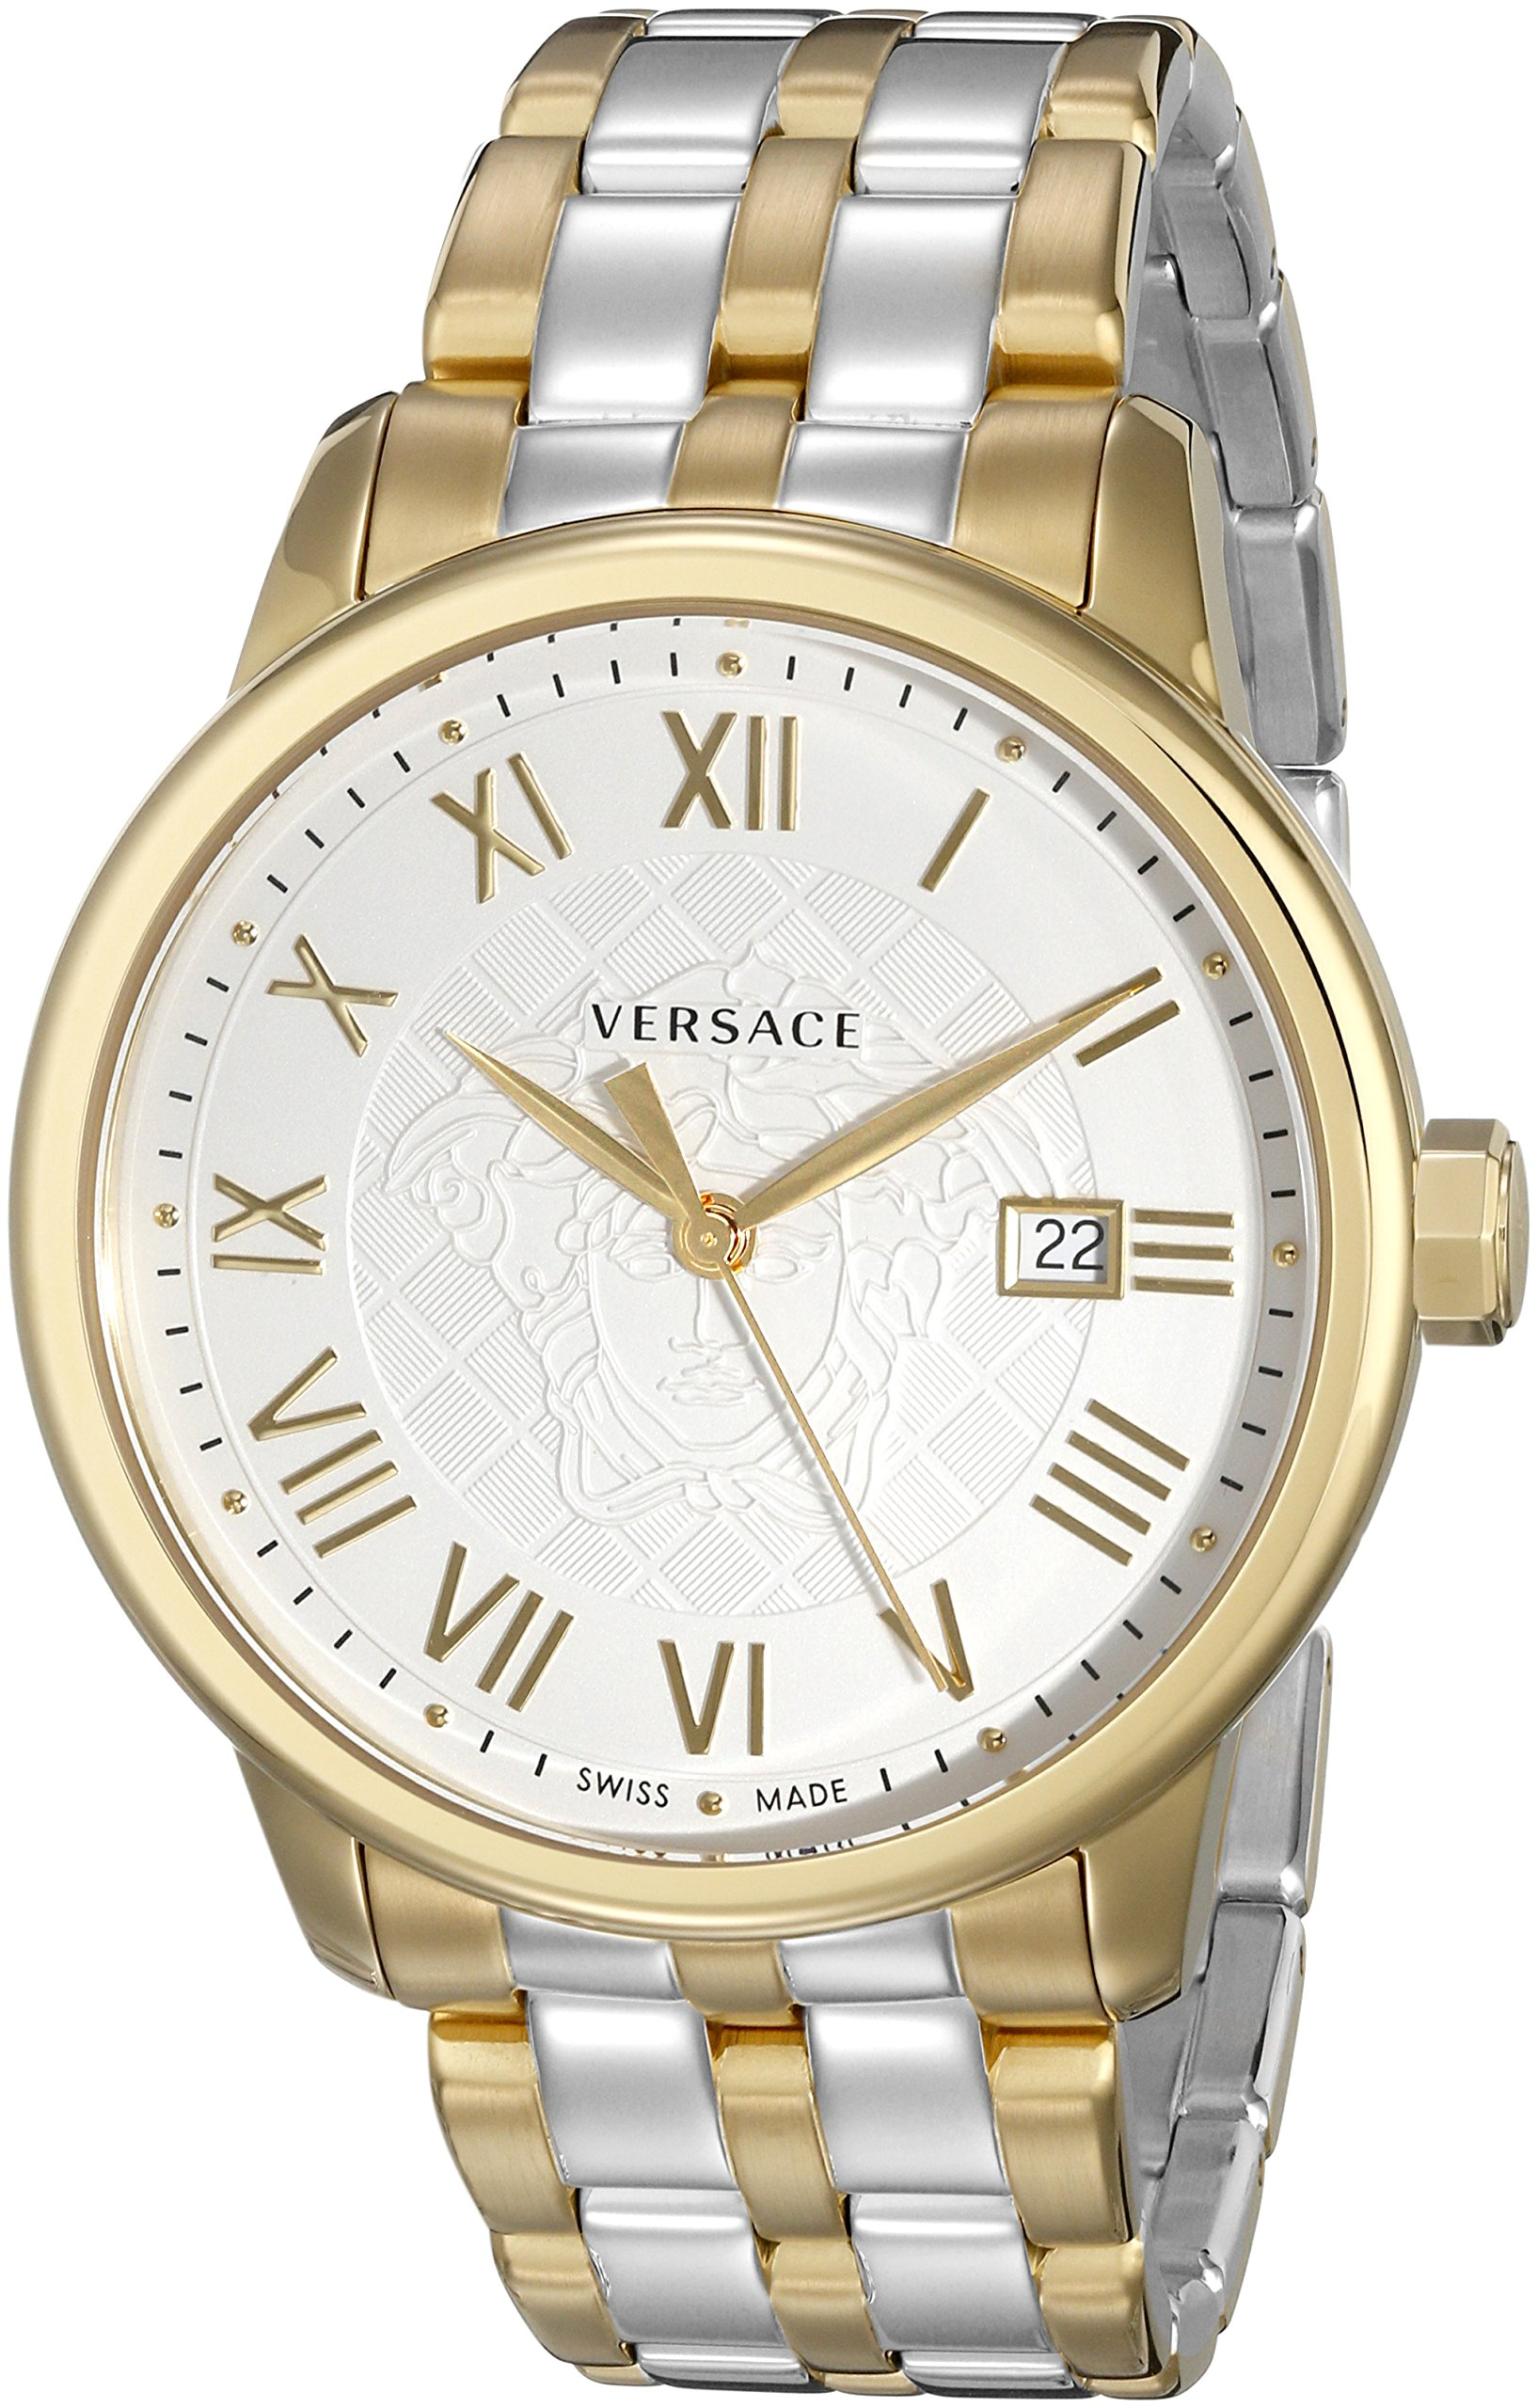 Versace Men's VQS050015 Business Two-Tone Stainless Steel Watch by Versace